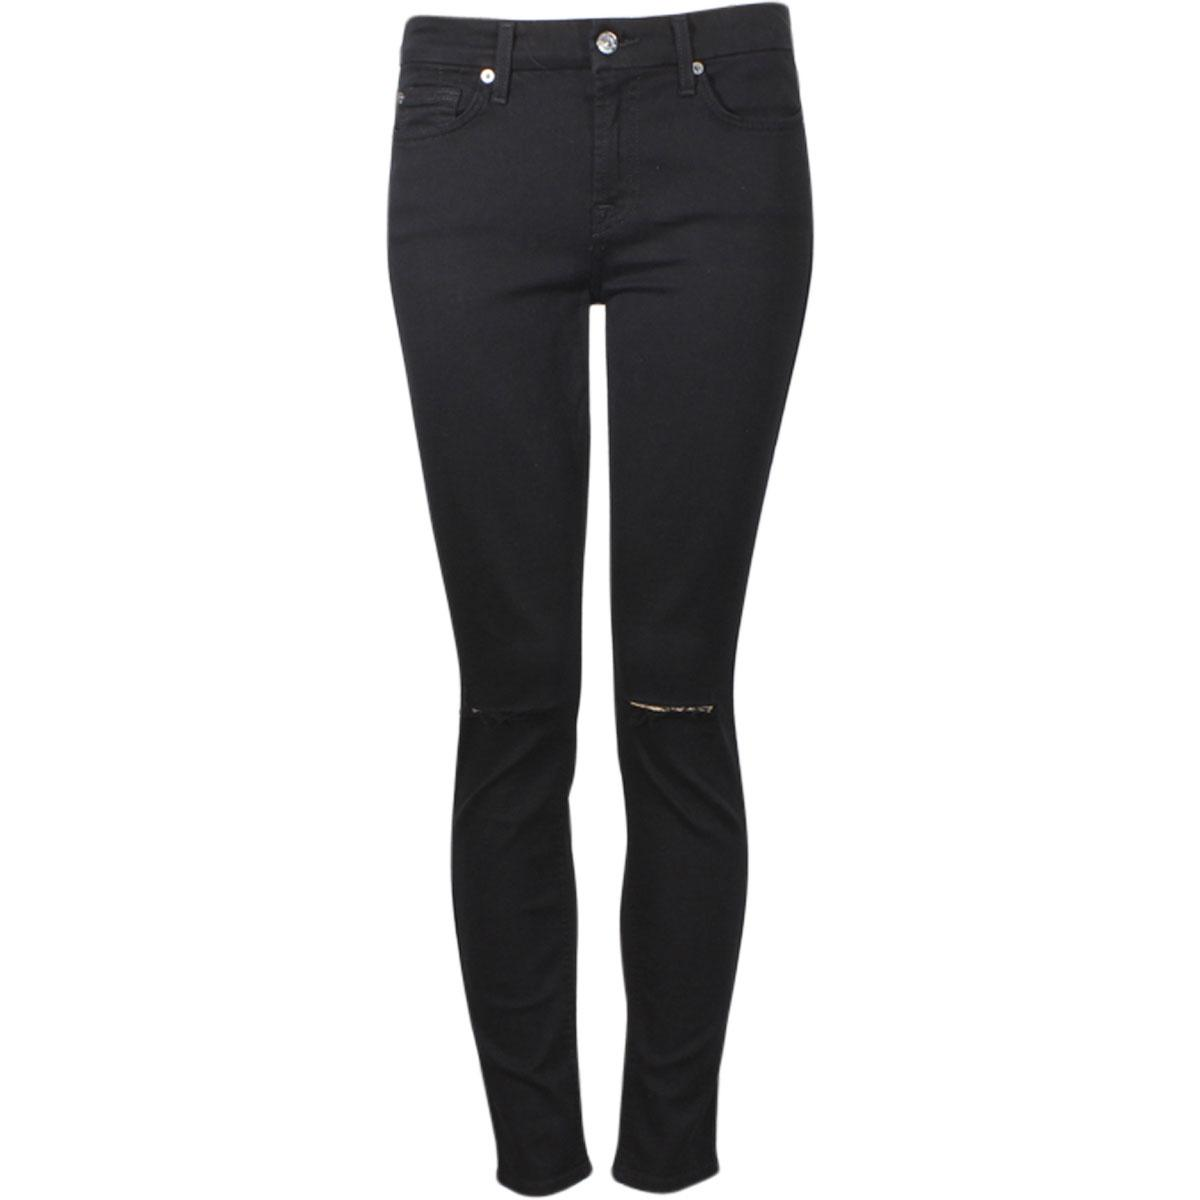 Image of 7 For All Mankind Women's (B)Air Denim Ankle Skinny With Destroy Cropped Jeans - Black - 25 (0)